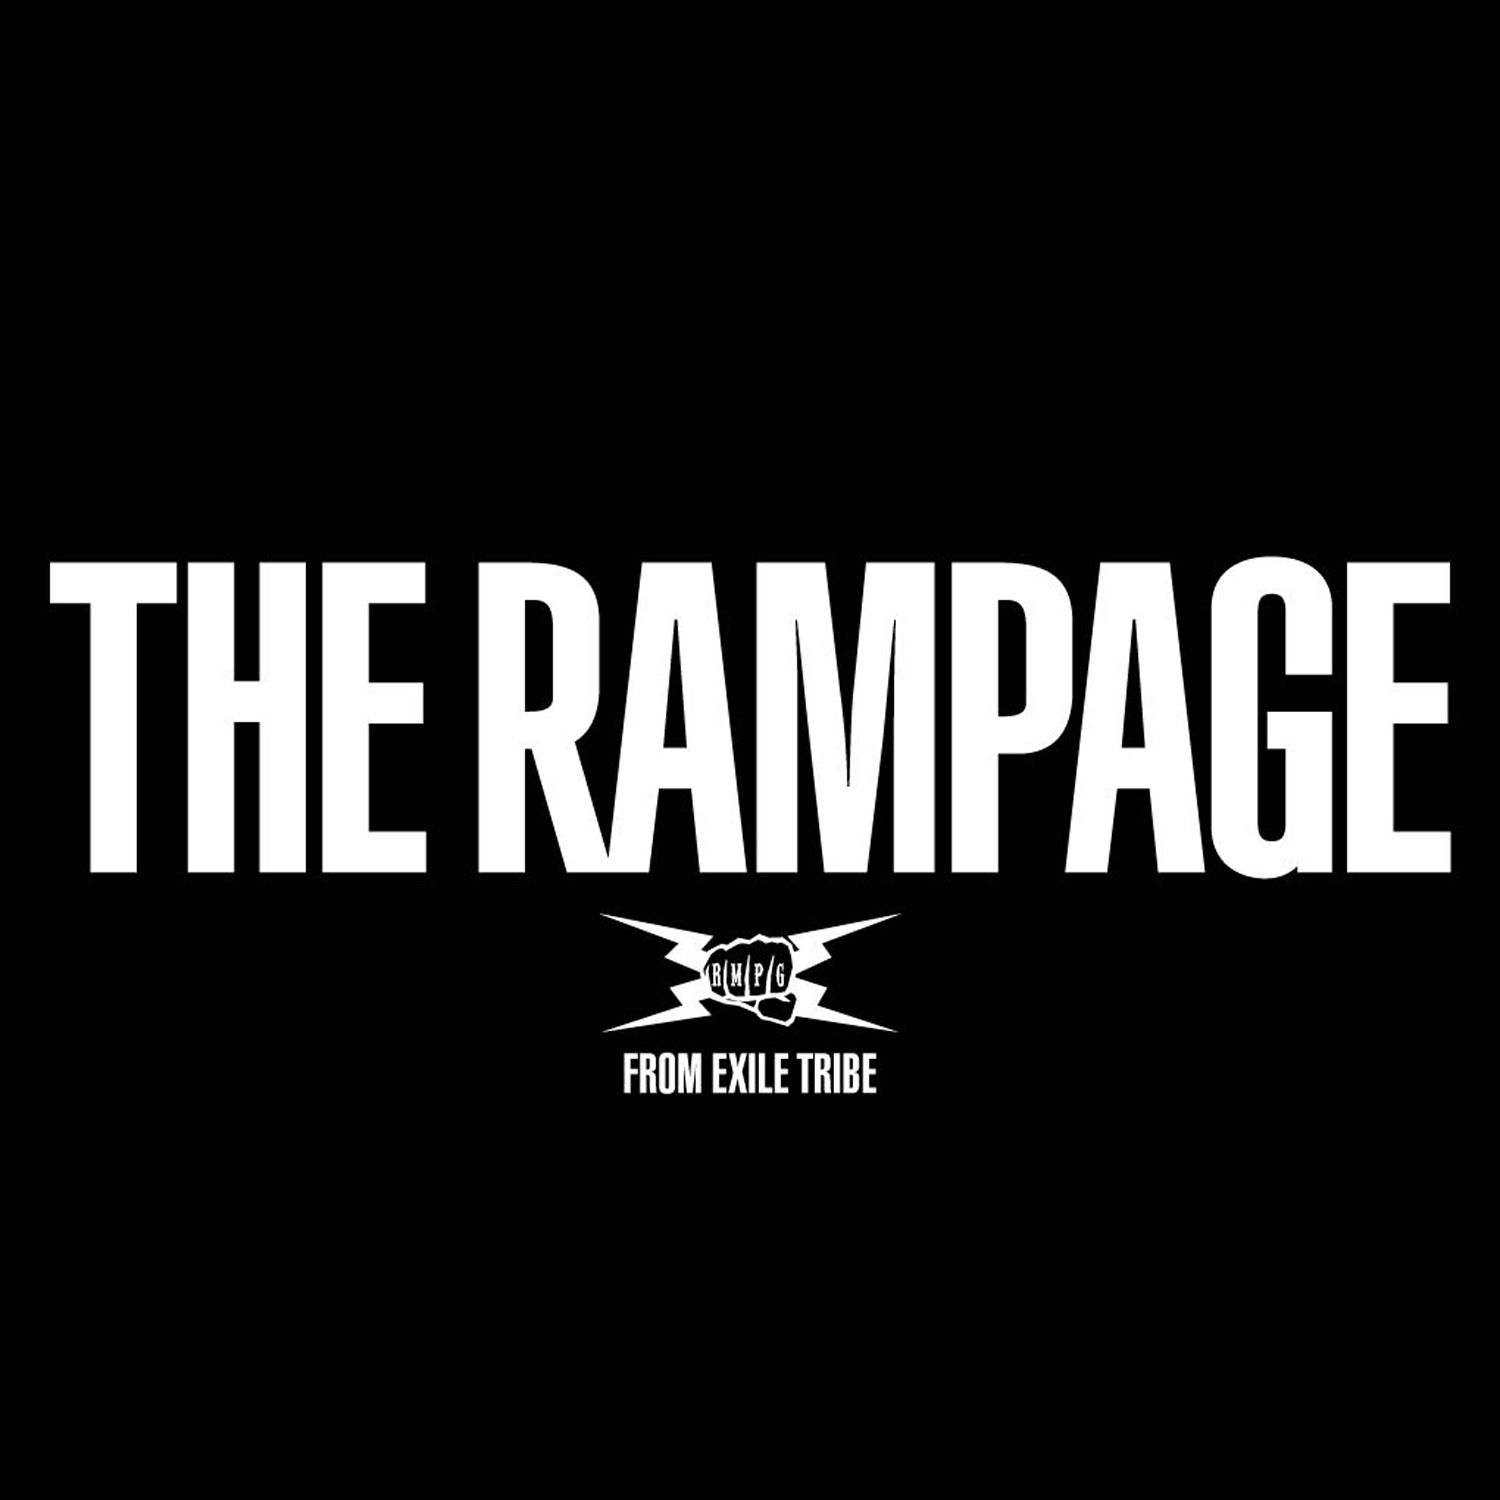 THE RAMPAGE・THE RAMPAGE from EXILE TRIBE